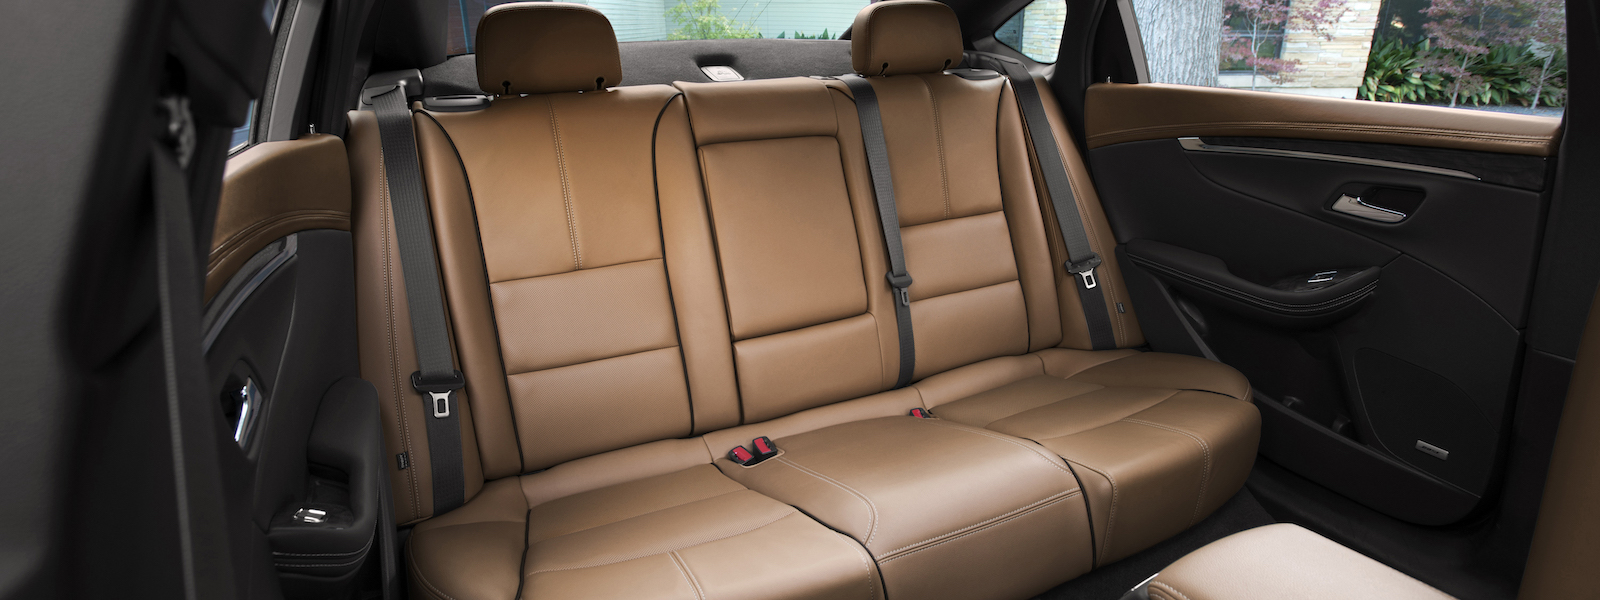 The rear seat of a 2016 Chevy Impala is shown in tan leather.